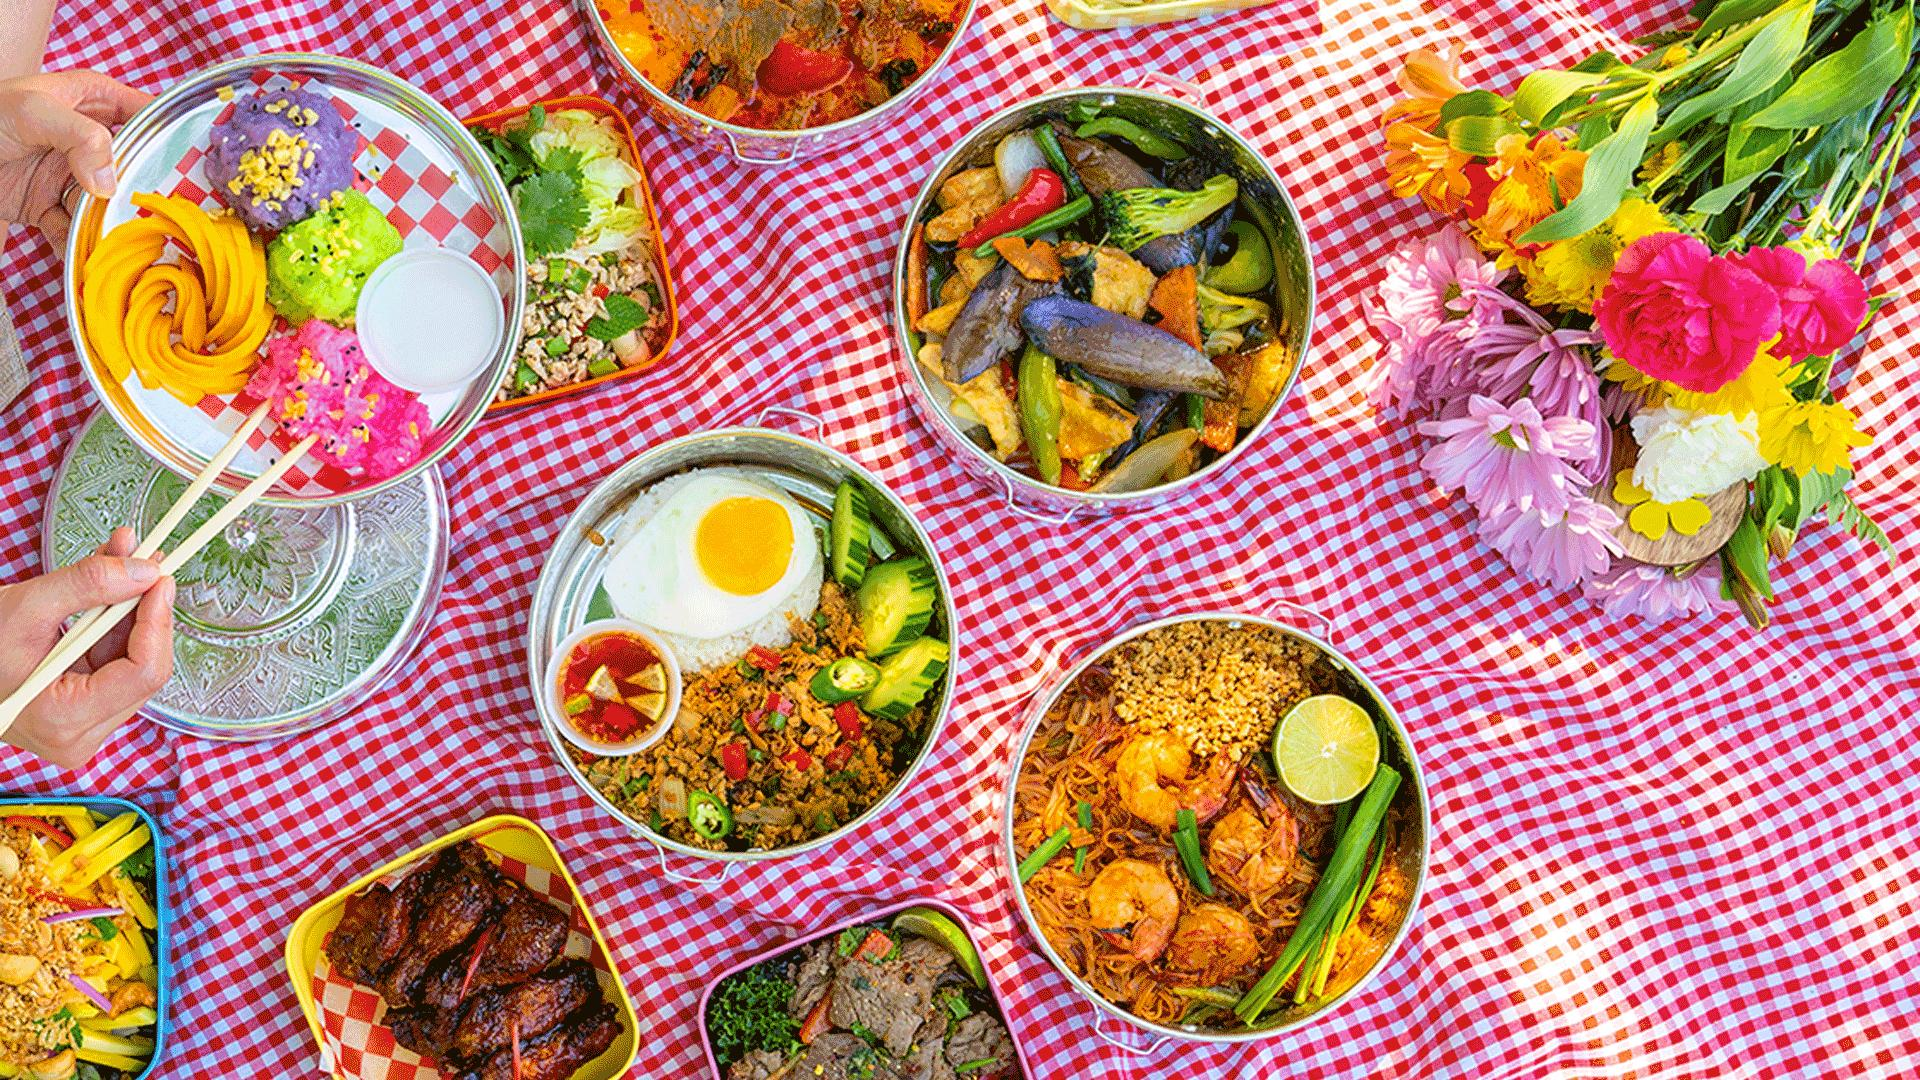 Must-try picnic baskets from Toronto restaurants   Assorted picnic dishes from Jatujak